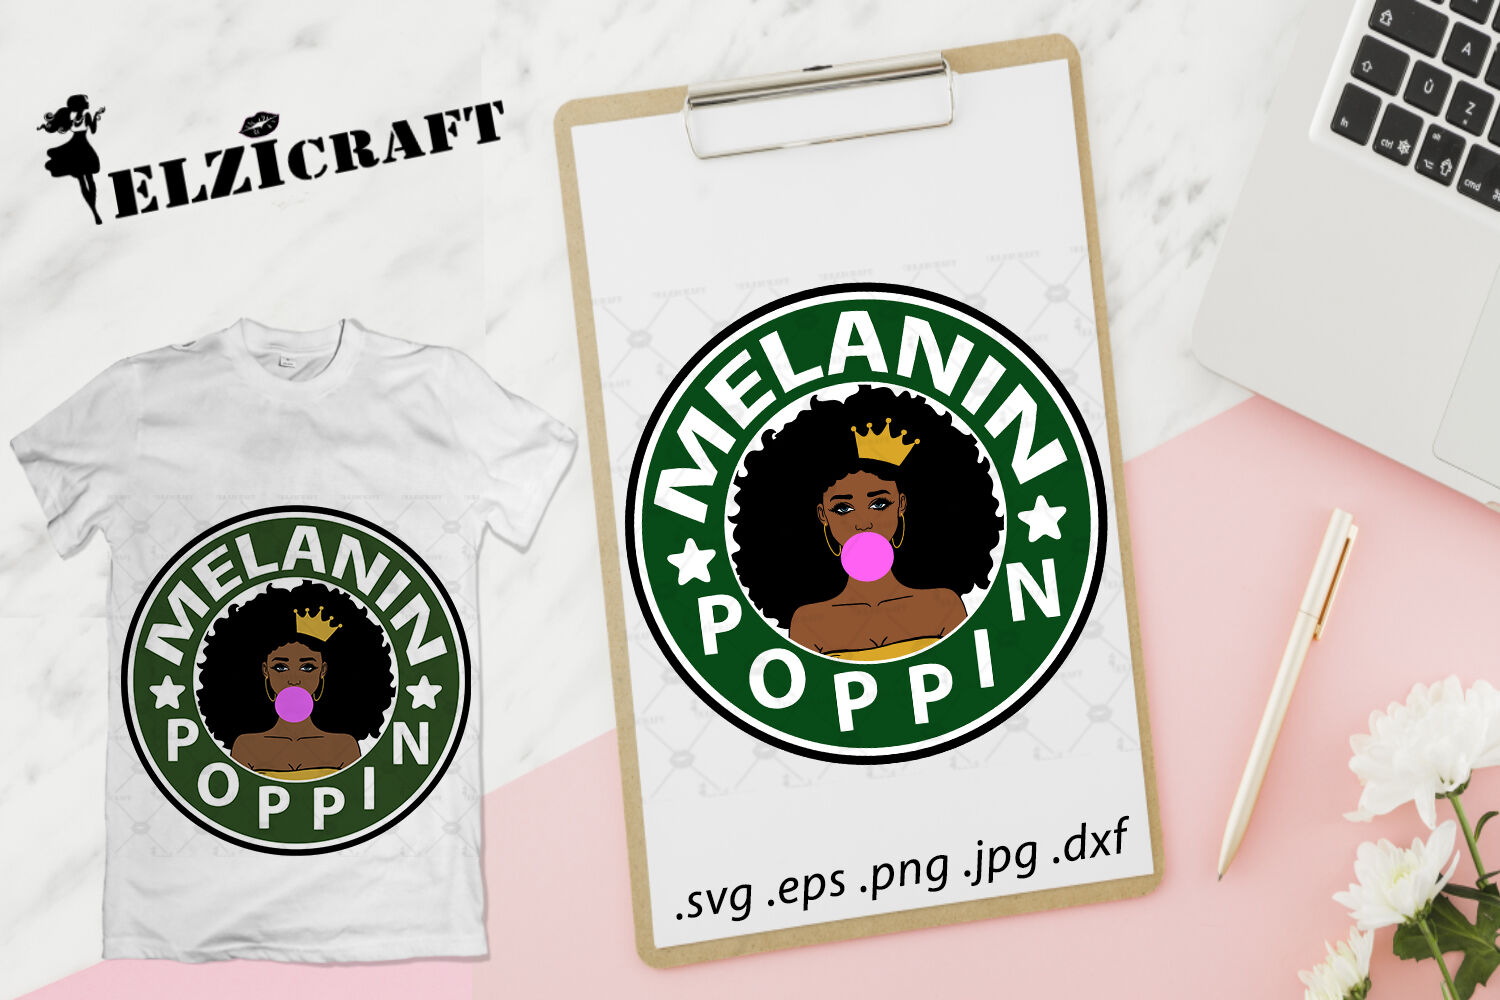 Afro Girl Melanin Poppin Svg Cut File By Elzicraft Thehungryjpeg Com